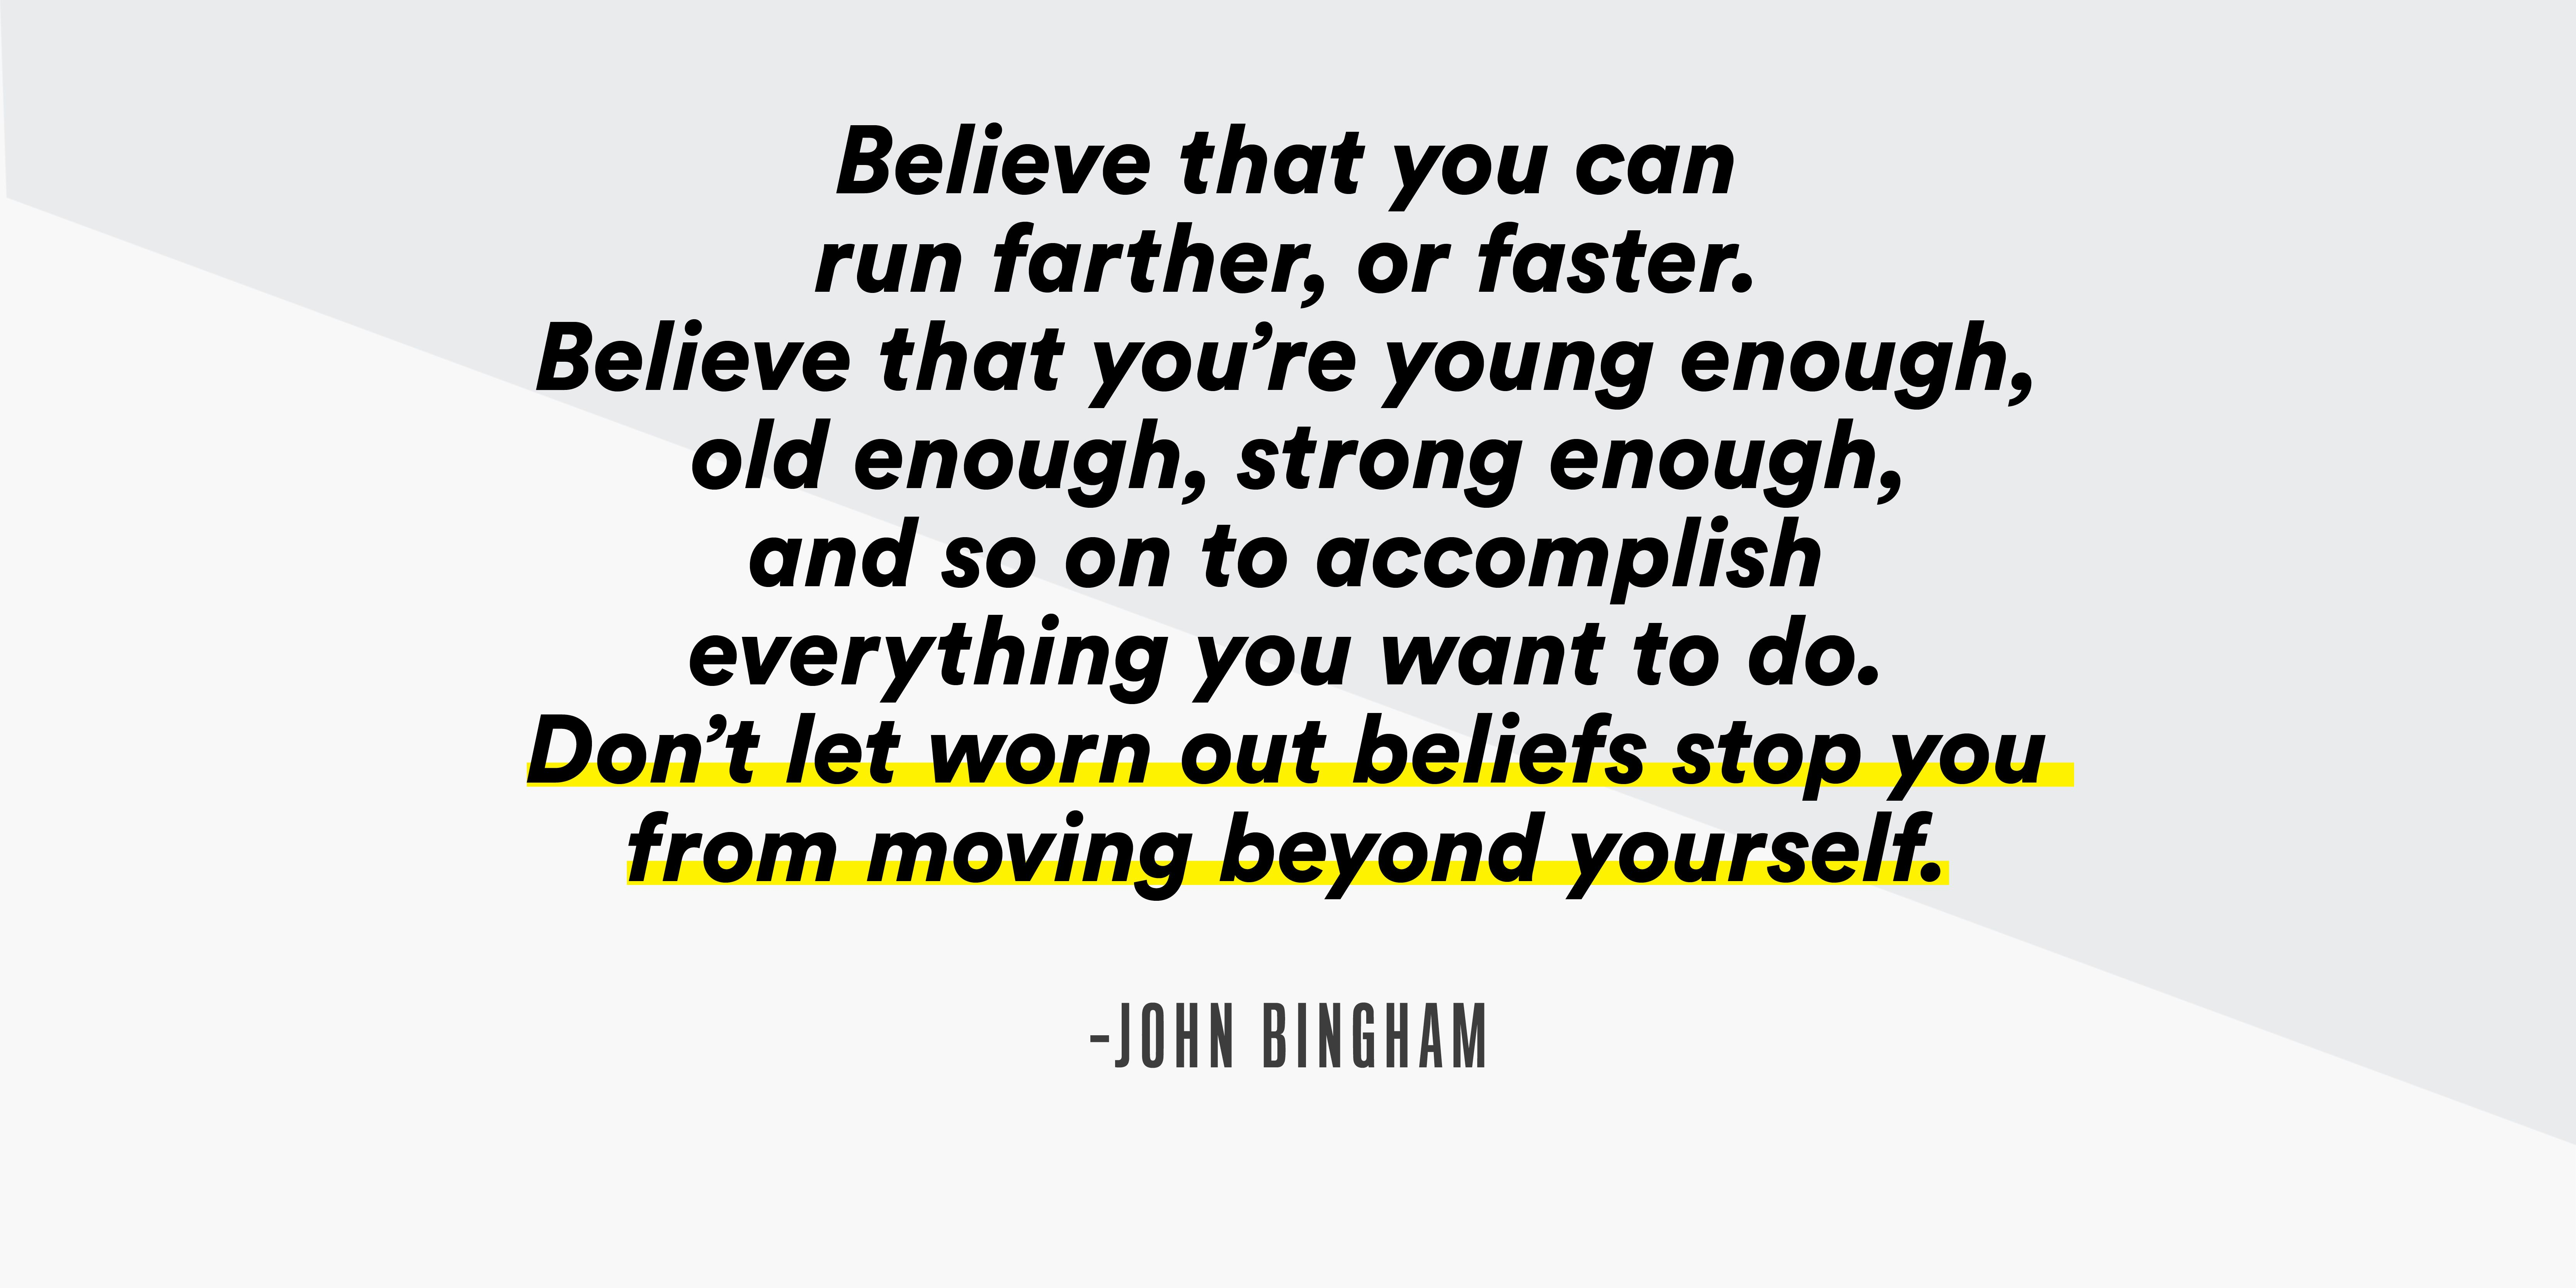 Inspiring Quotes For Runners Motivation To Run